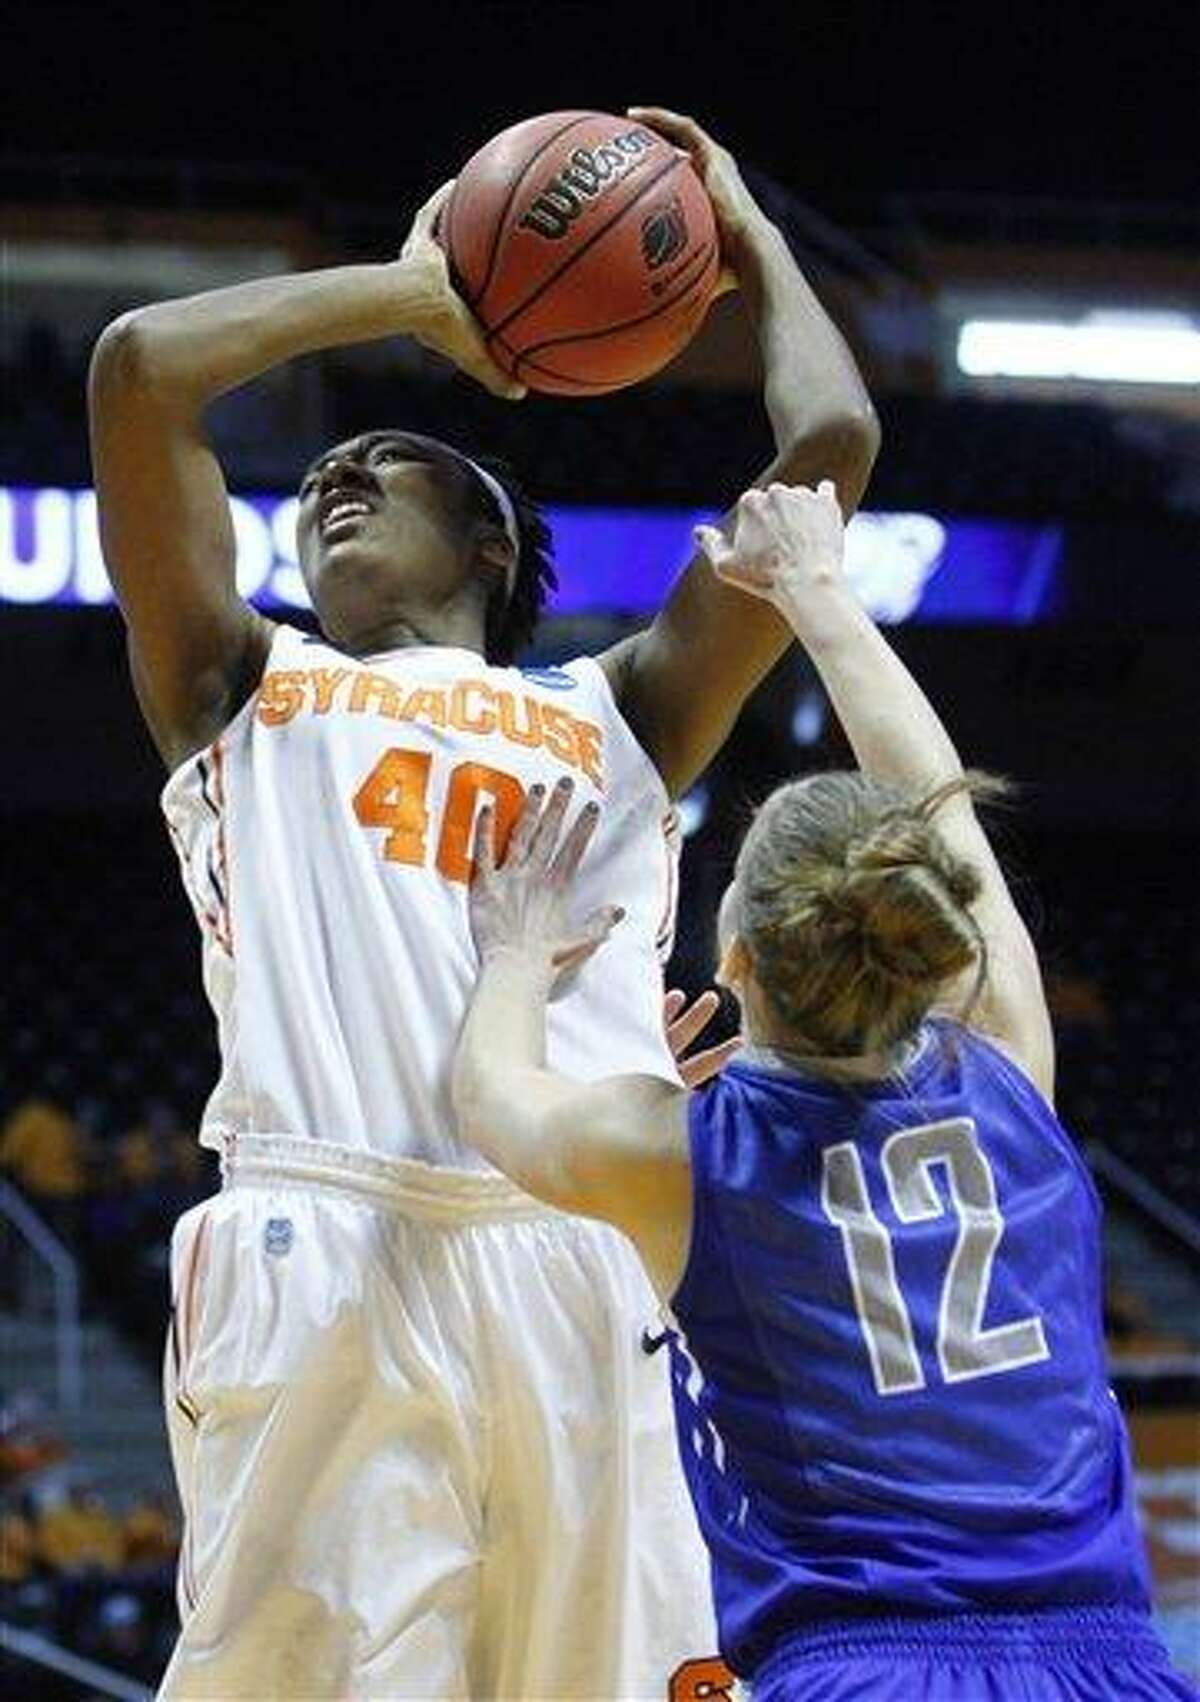 Syracuse center Kayla Alexander (40) goes for a shot as she's fouled by Creighton guard Ally Jensen (12) in the first half of a first-round game in the women's NCAA college basketball tournament on Saturday, March 23, 2013, in Knoxville, Tenn. (AP Photo/Wade Payne)